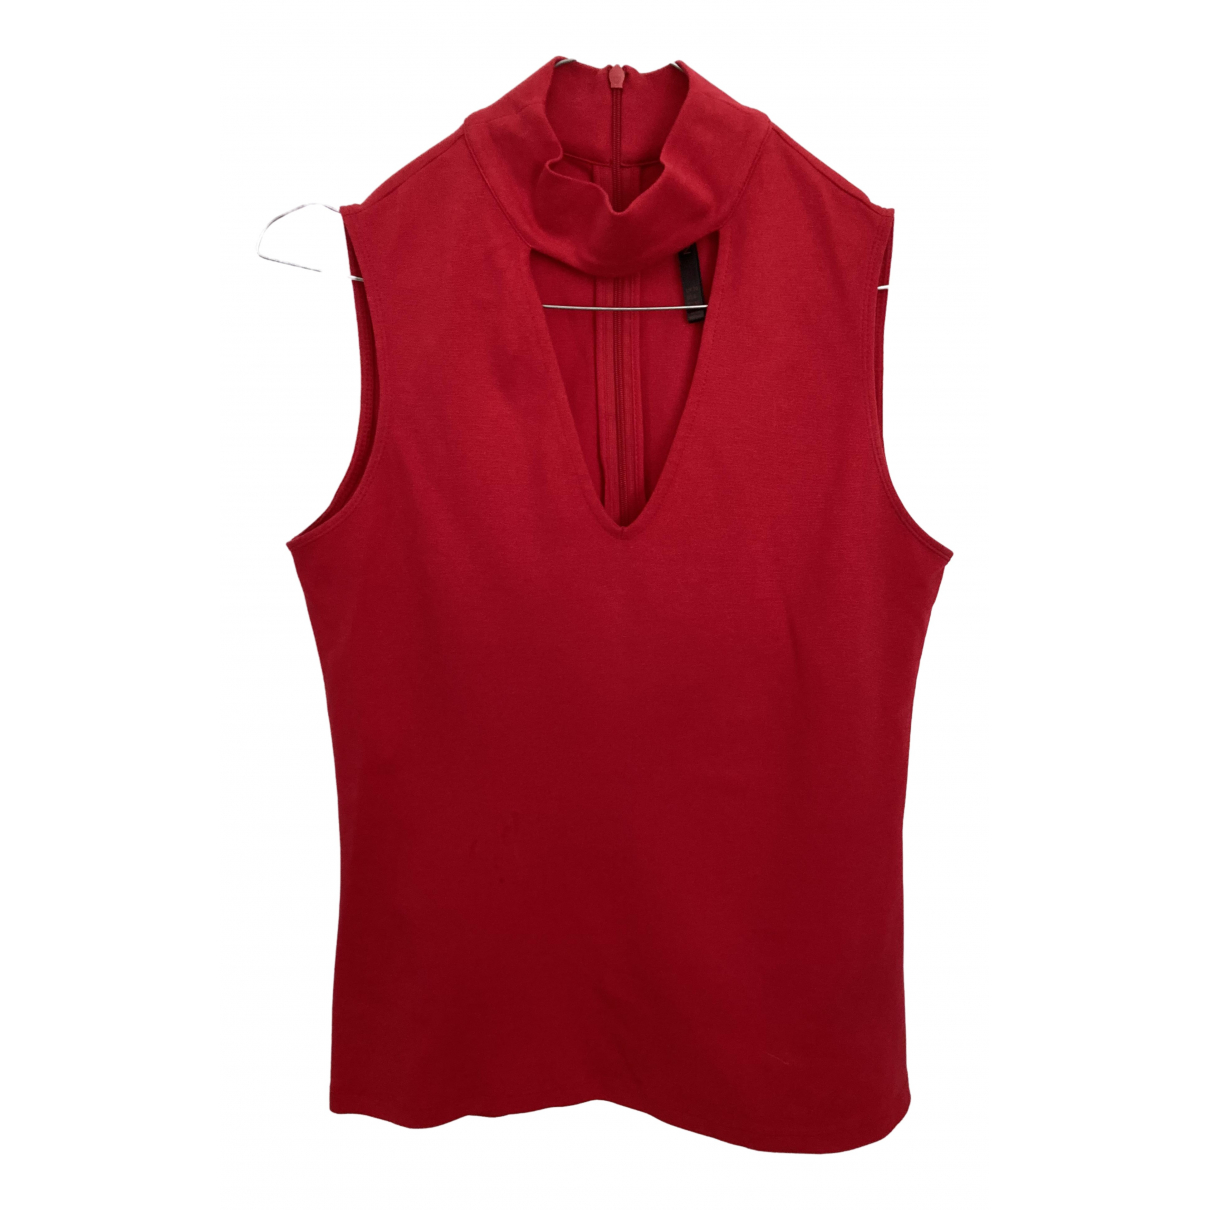 Karen Millen \N Red Cotton  top for Women 10 UK